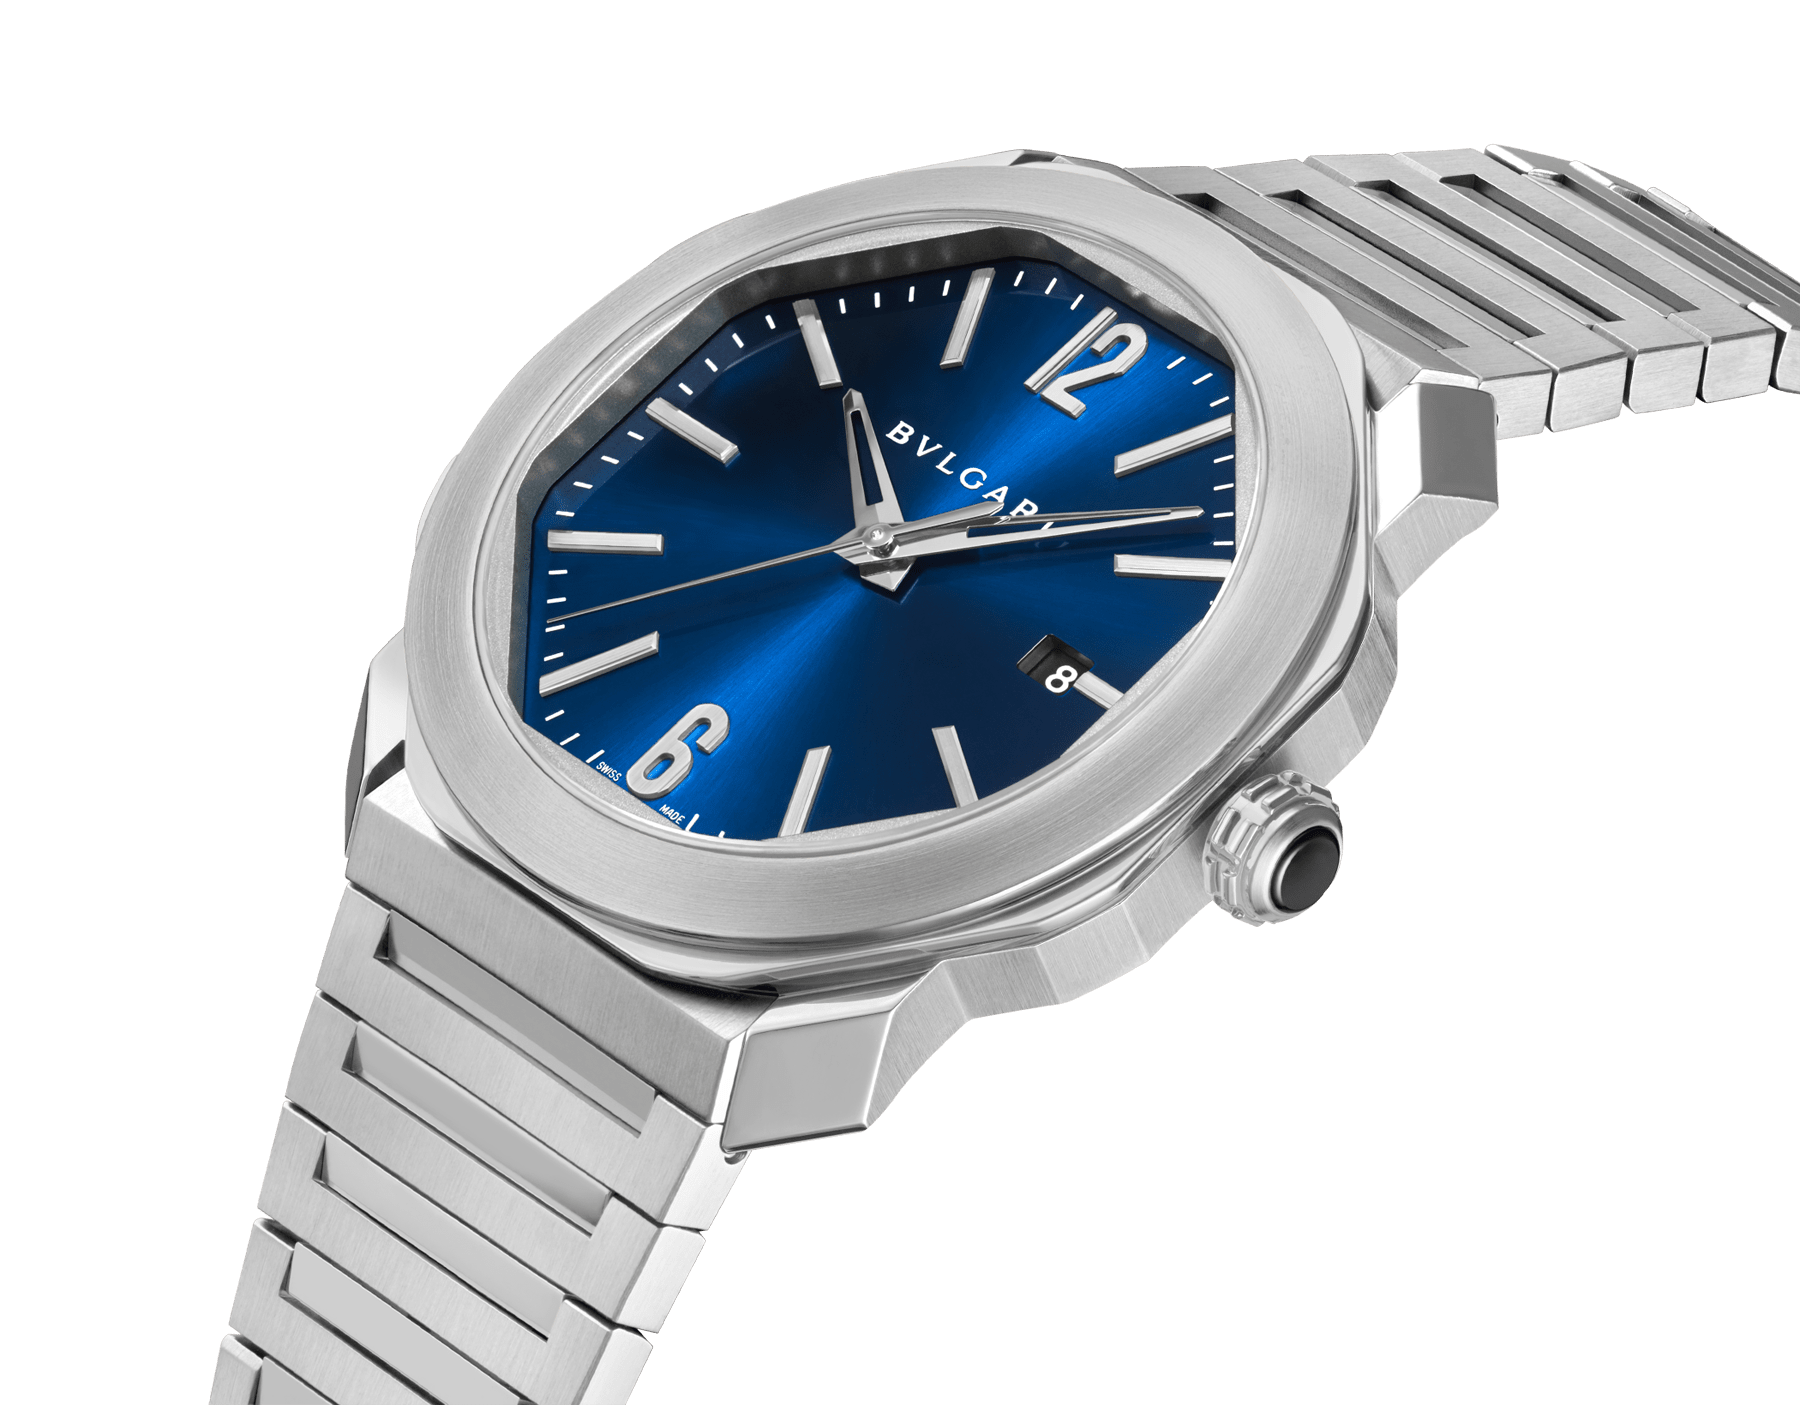 Octo Roma watch with mechanical manufacture movement, automatic winding, stainless steel case and bracelet, blue dial. 102856 image 2